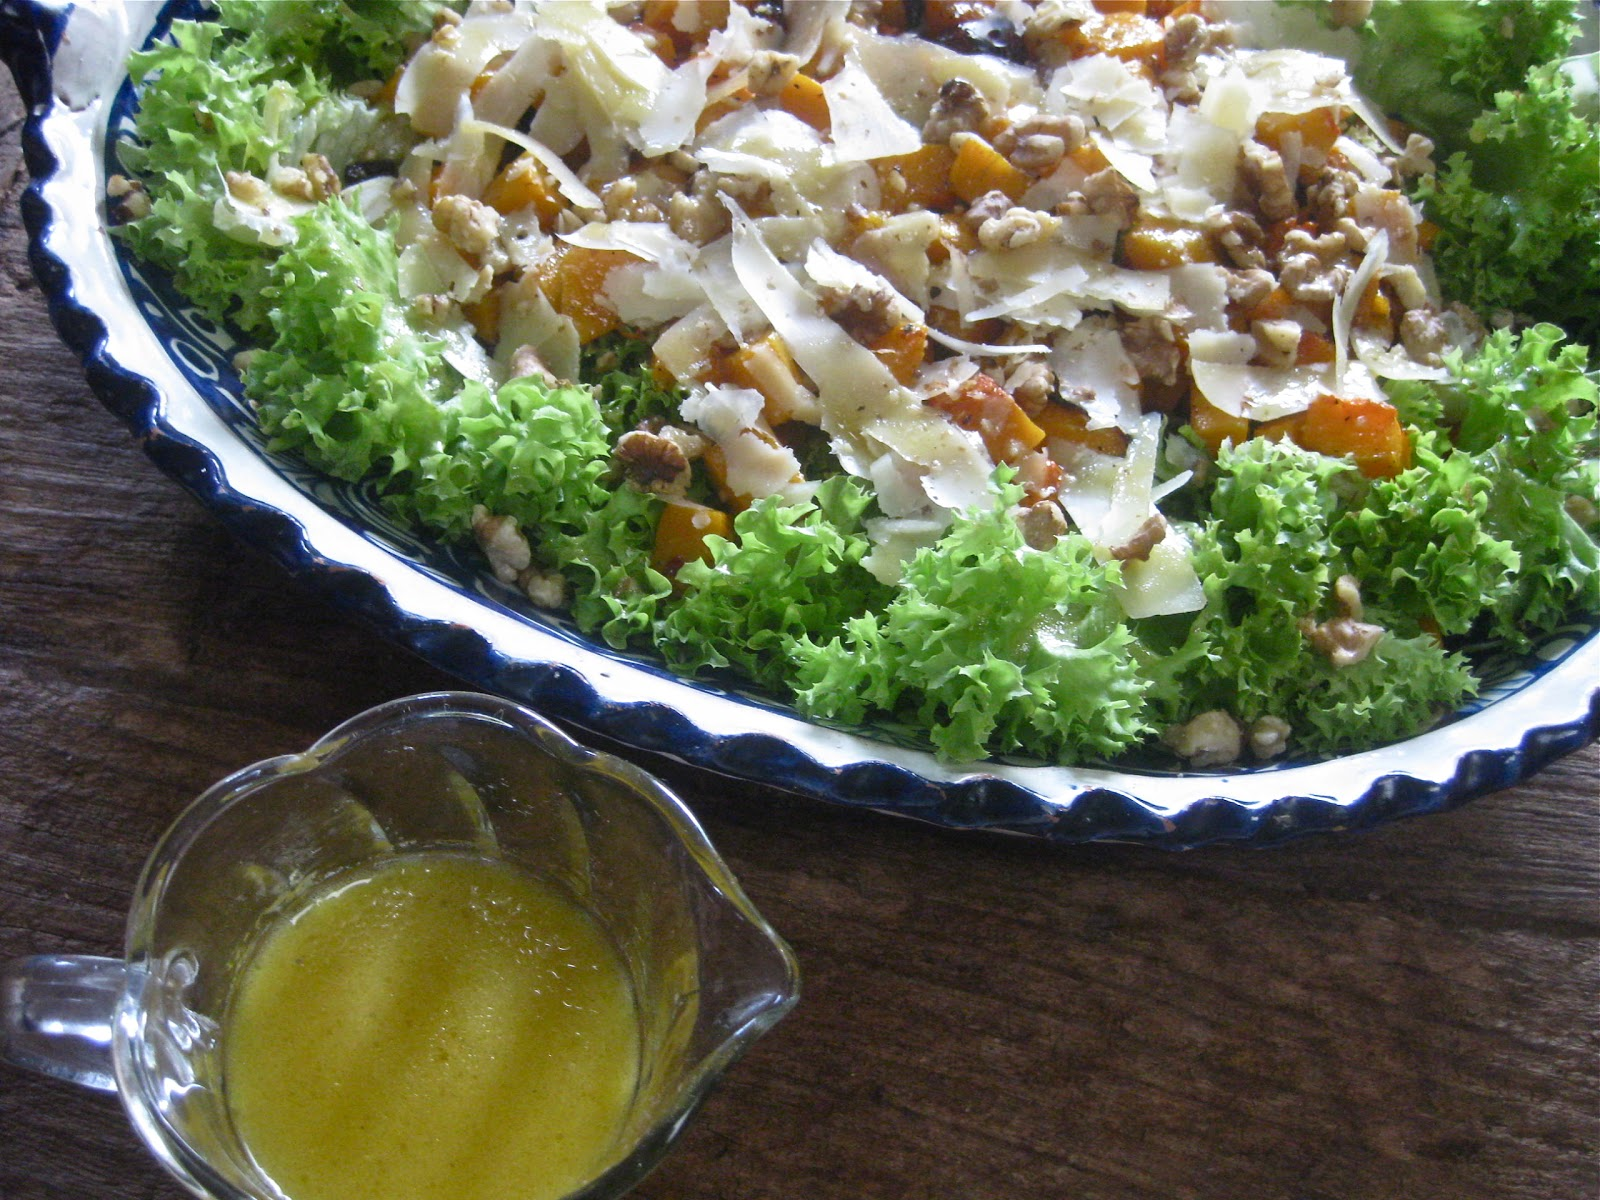 ... Butternut Squash Salad with Parmesan and Warm Cider Vinaigrette